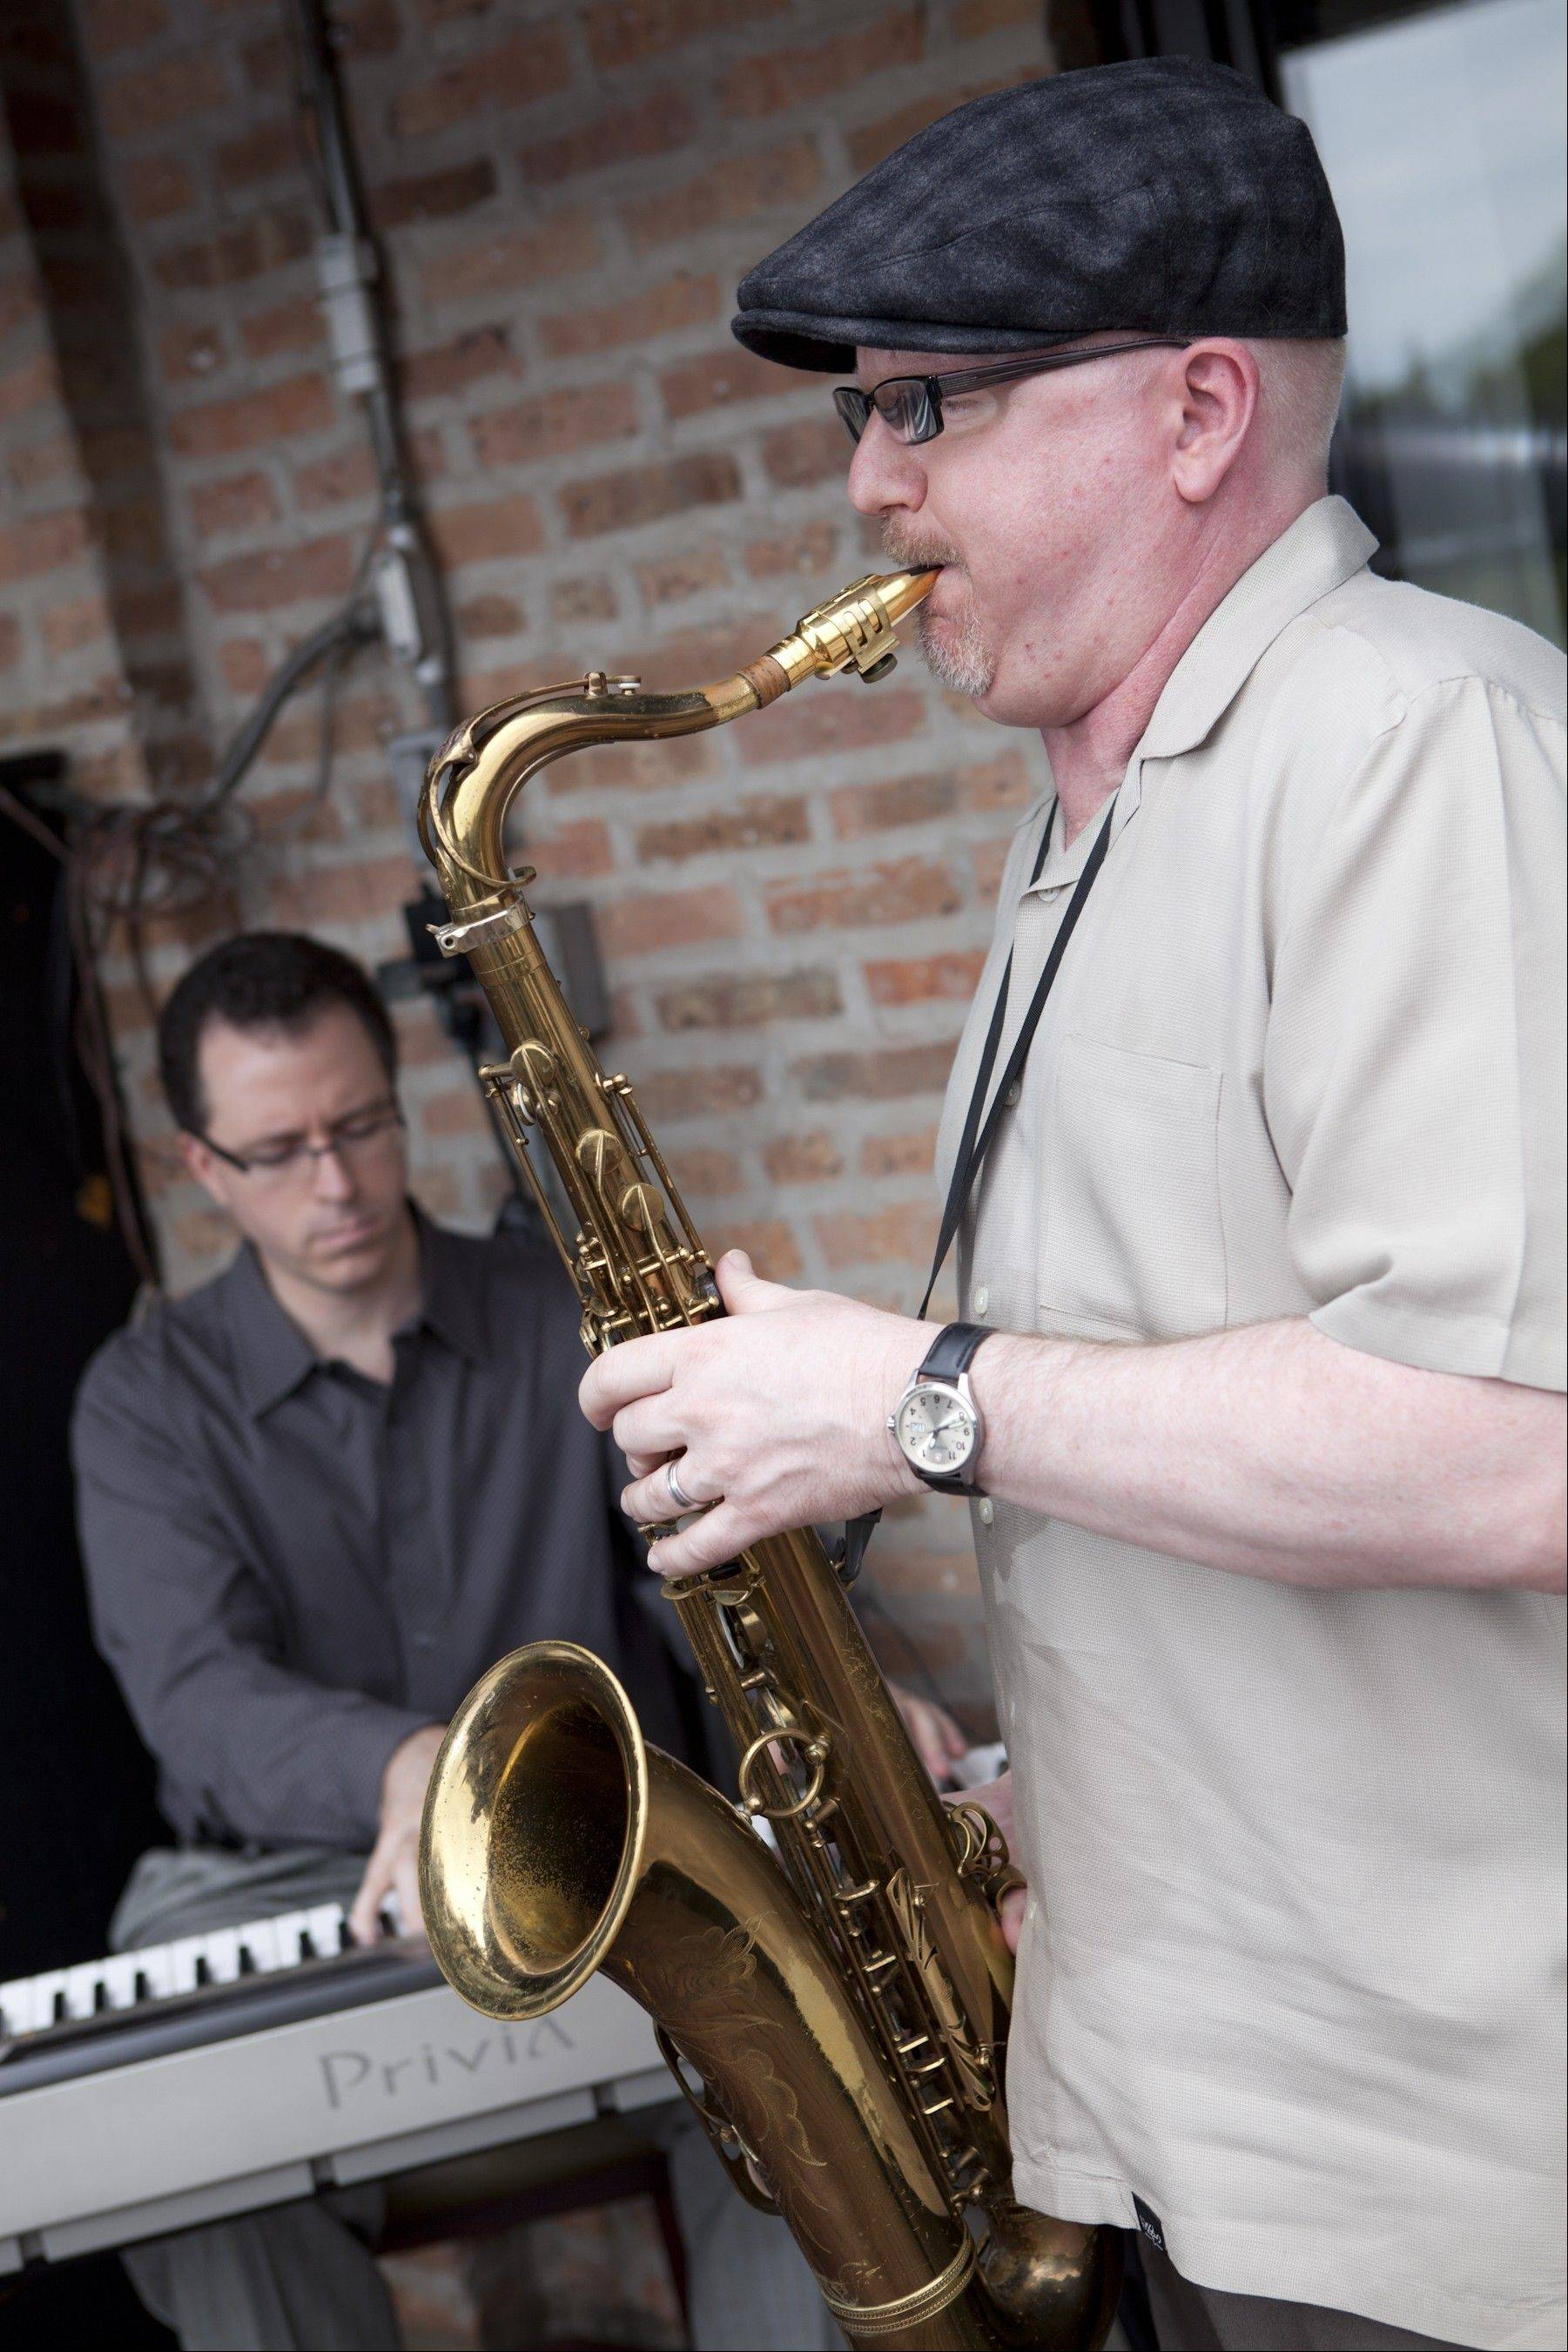 Mike Frost plays sax while Tim Green plays keyboards in the Mike Frost Duo. They will perform Sunday at Bistro One West in St. Charles as part of the St. Charles Jazz Weekend.